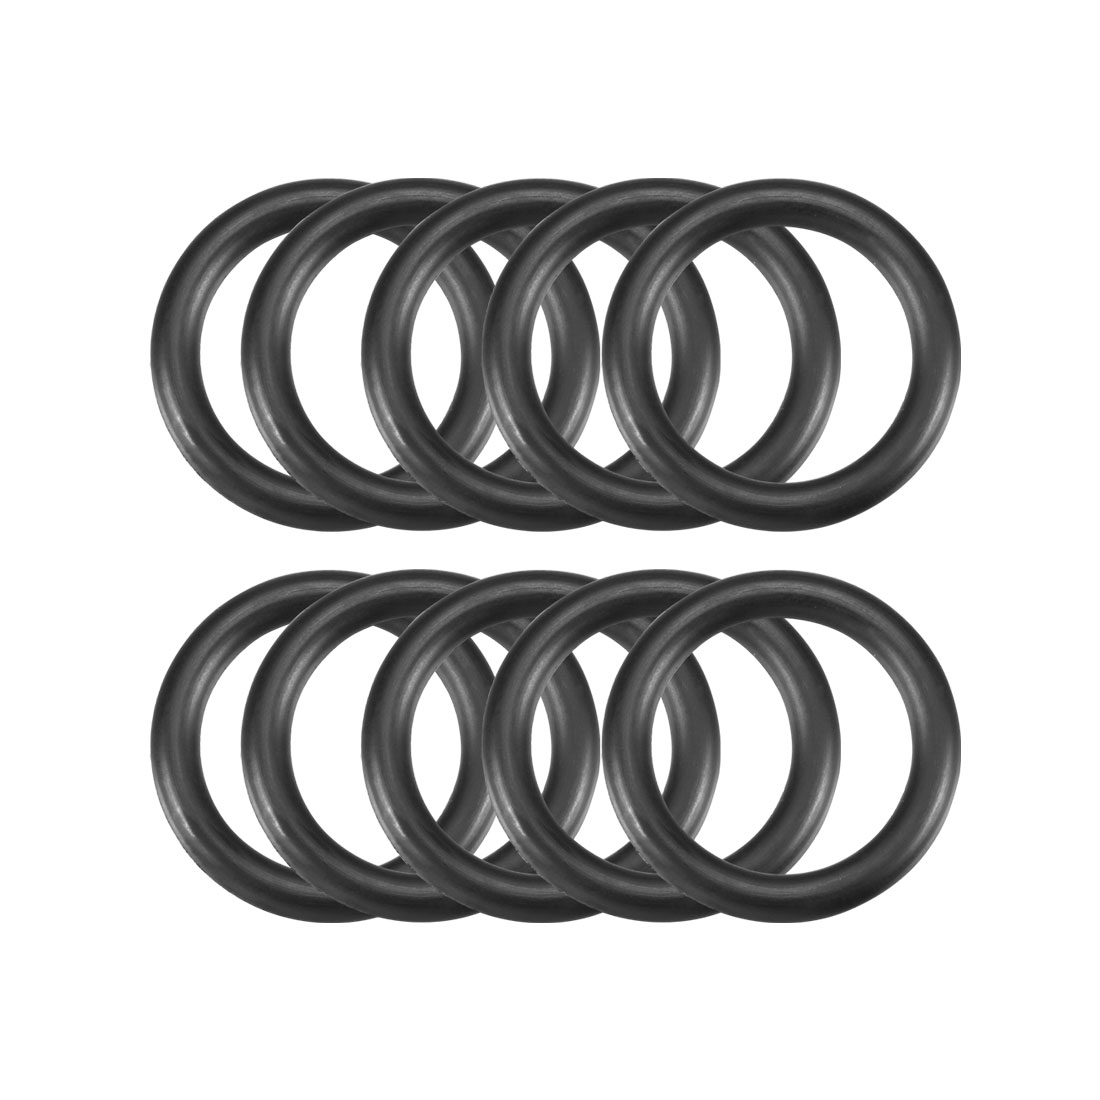 10 Pcs 25mm x 3.5mm Black Silicone O Rings Oil Seals Gaskets